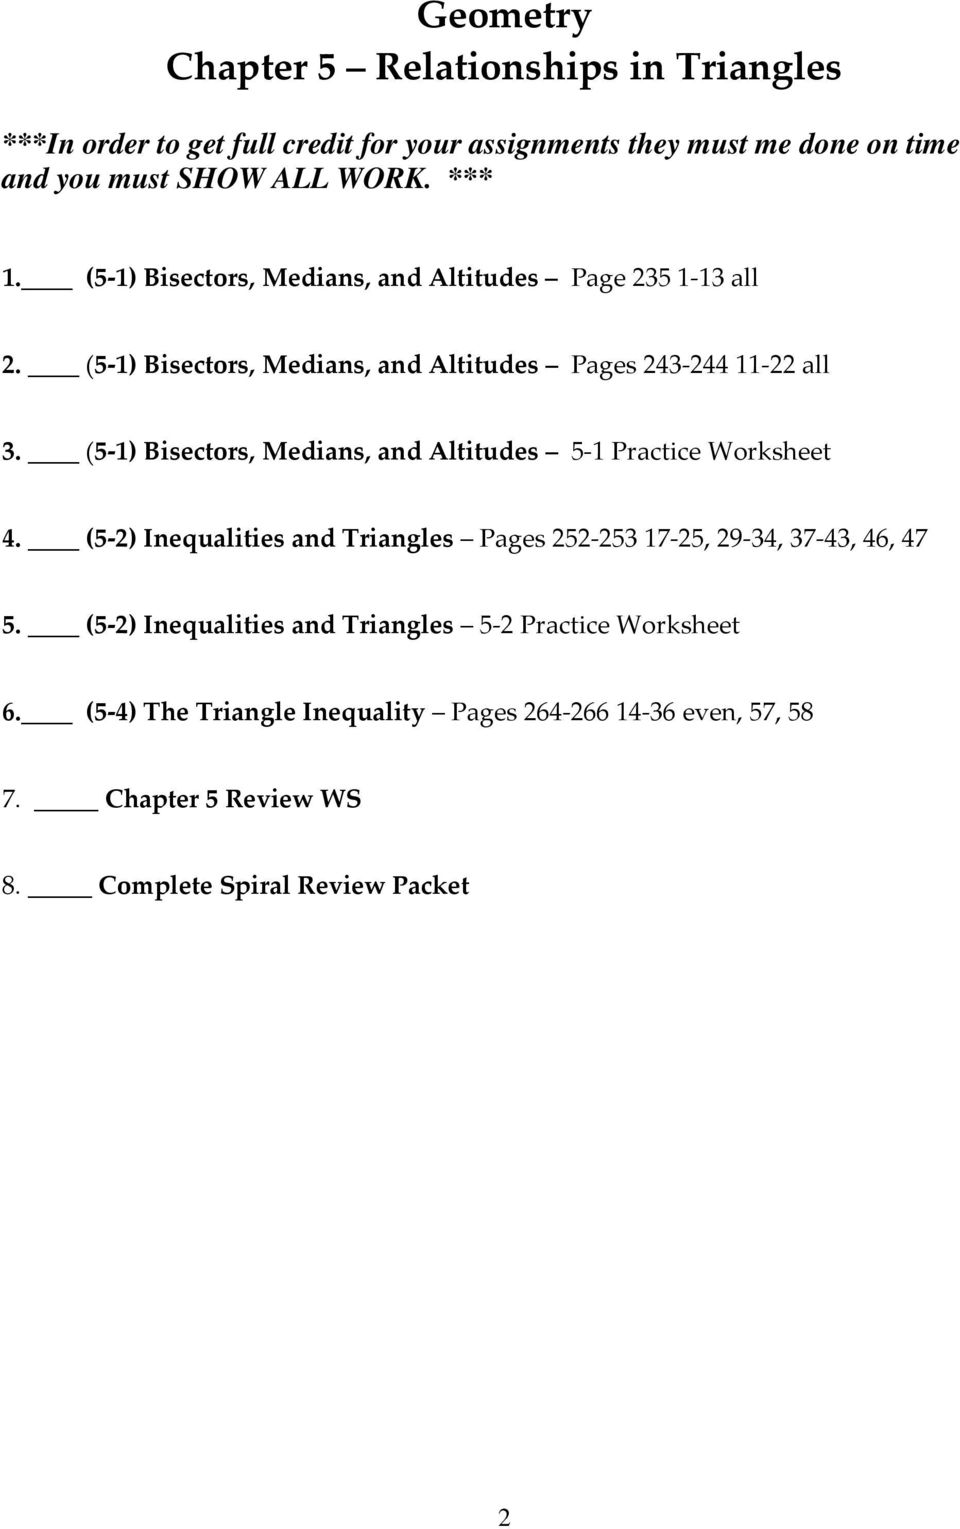 Geometry Relationships In Triangles Unit 5 Name Pdf